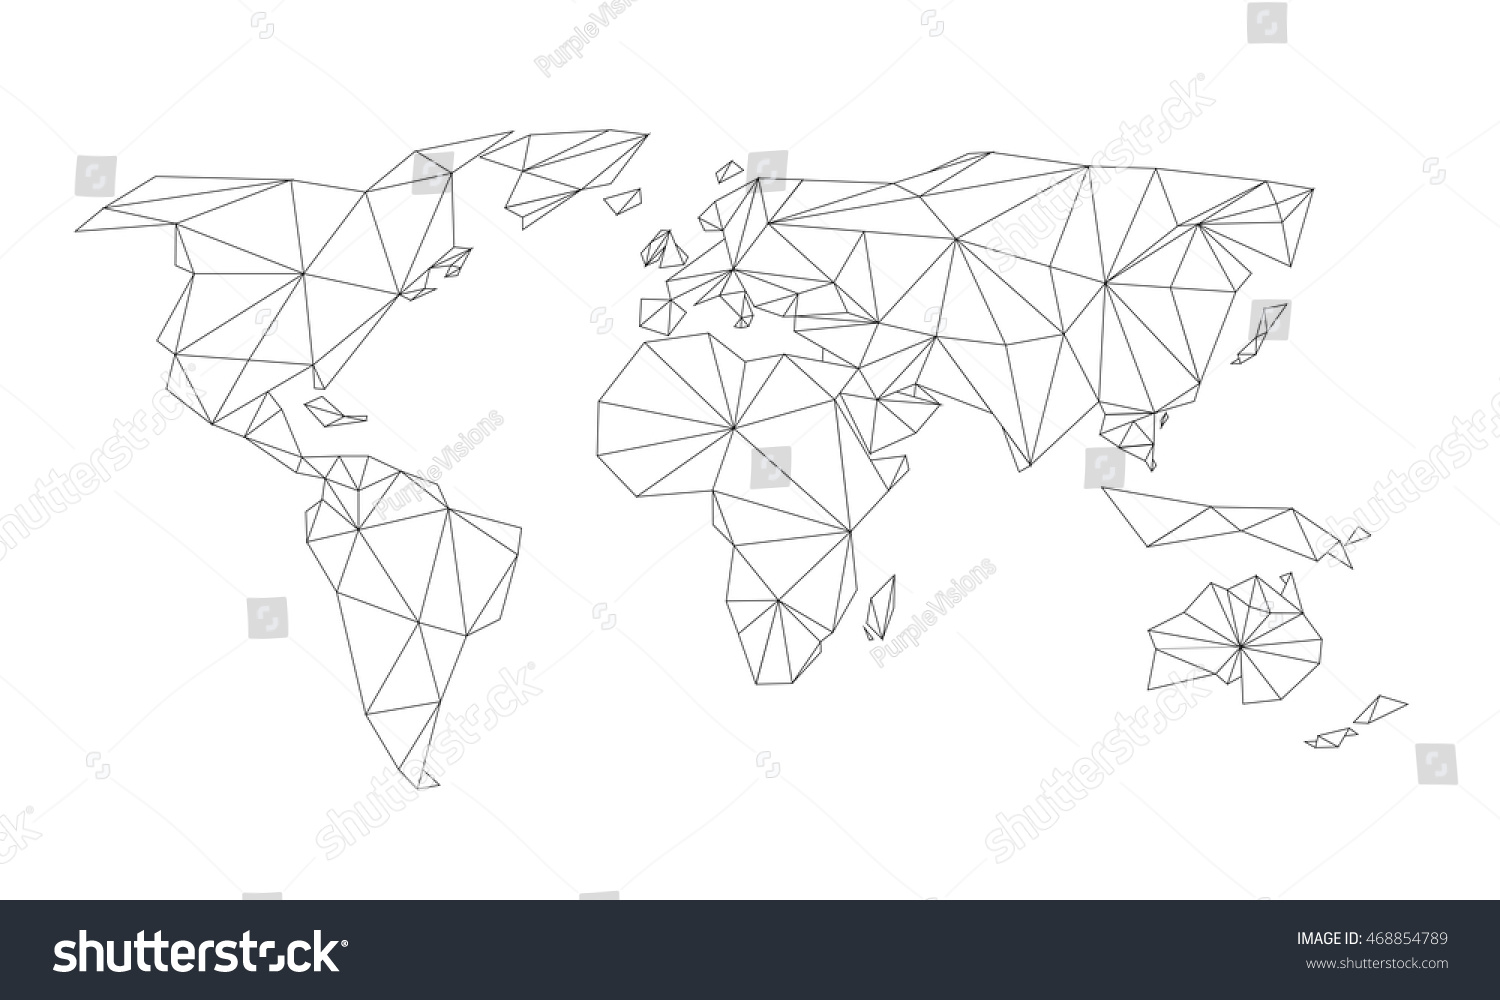 Triangle world map vector net black vectores en stock 468854789 triangle world map vector net black vectores en stock 468854789 shutterstock gumiabroncs Images